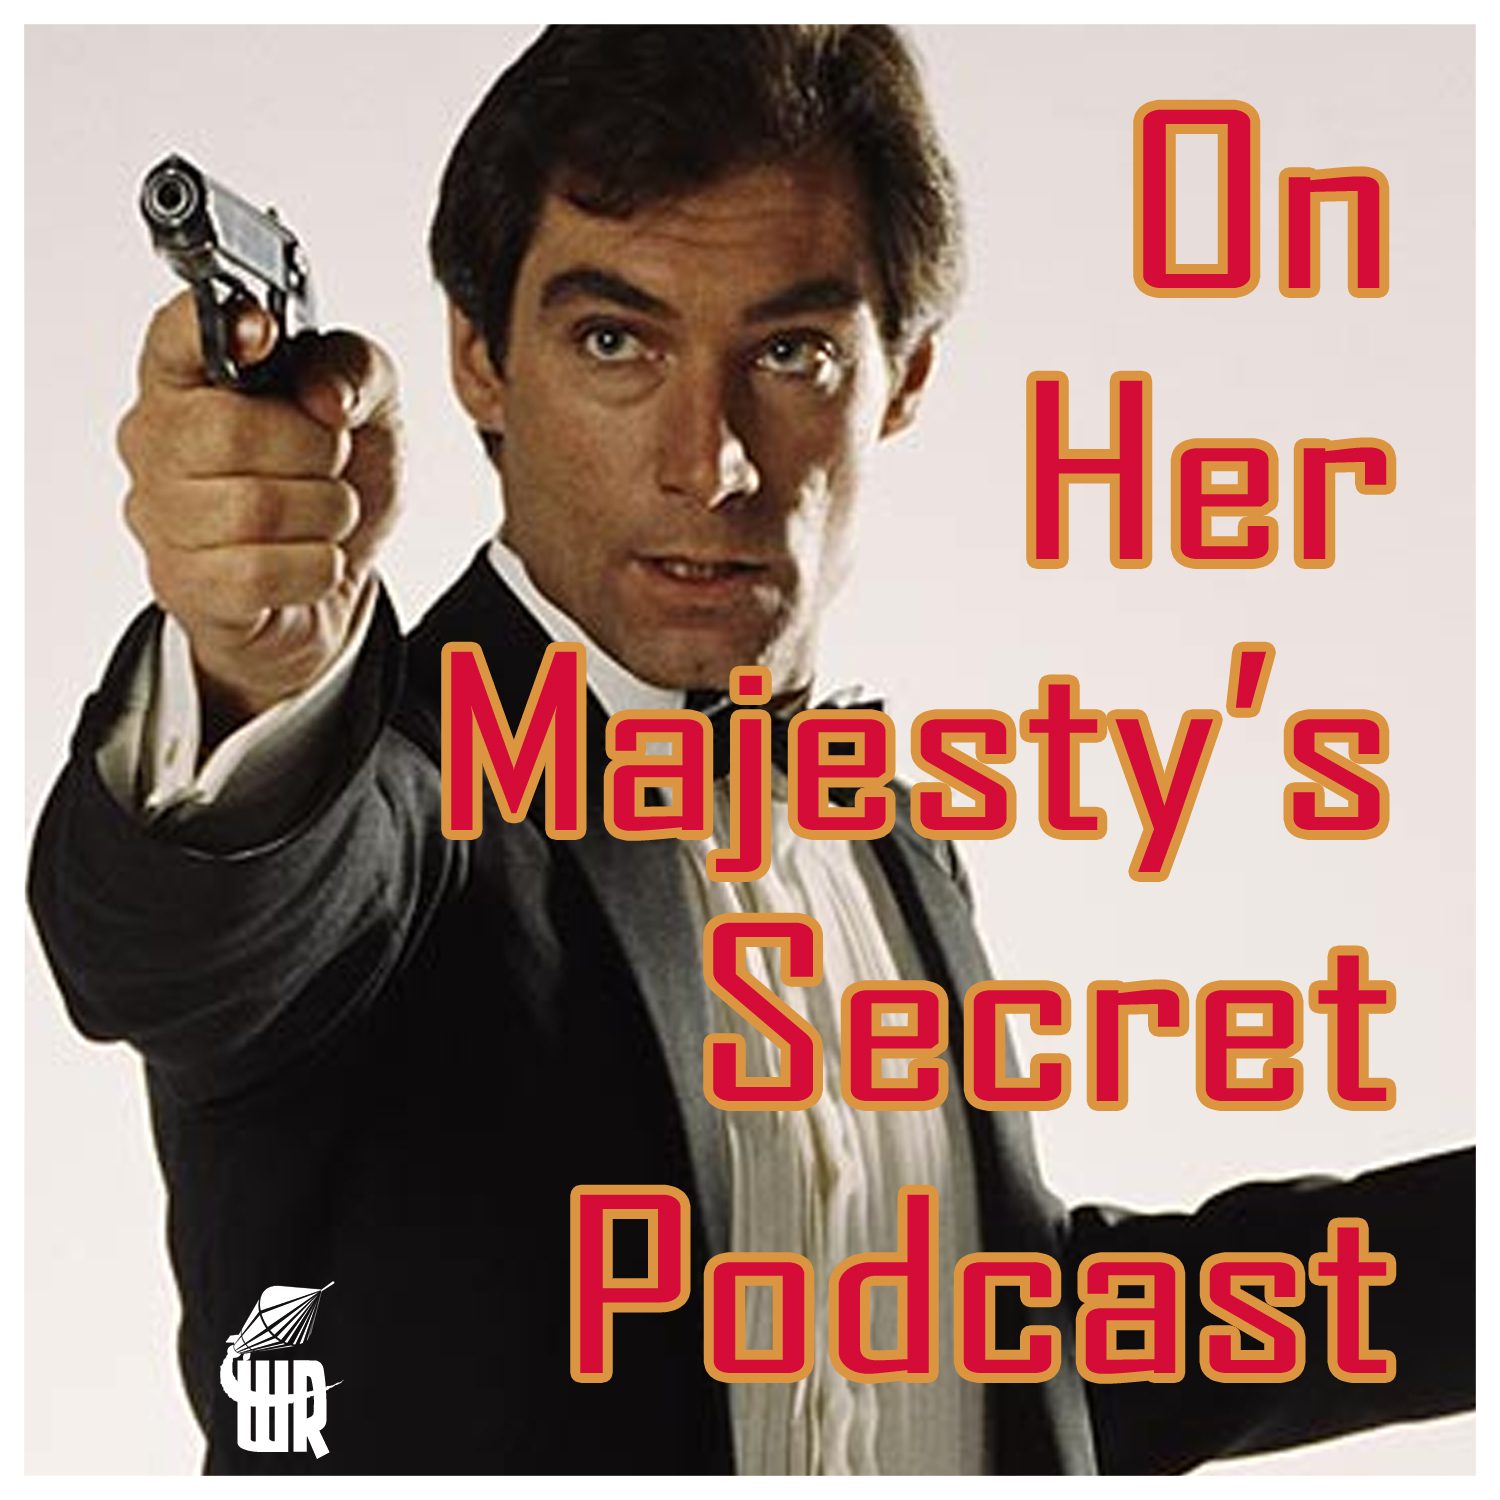 On Her Majesty's Secret Podcast